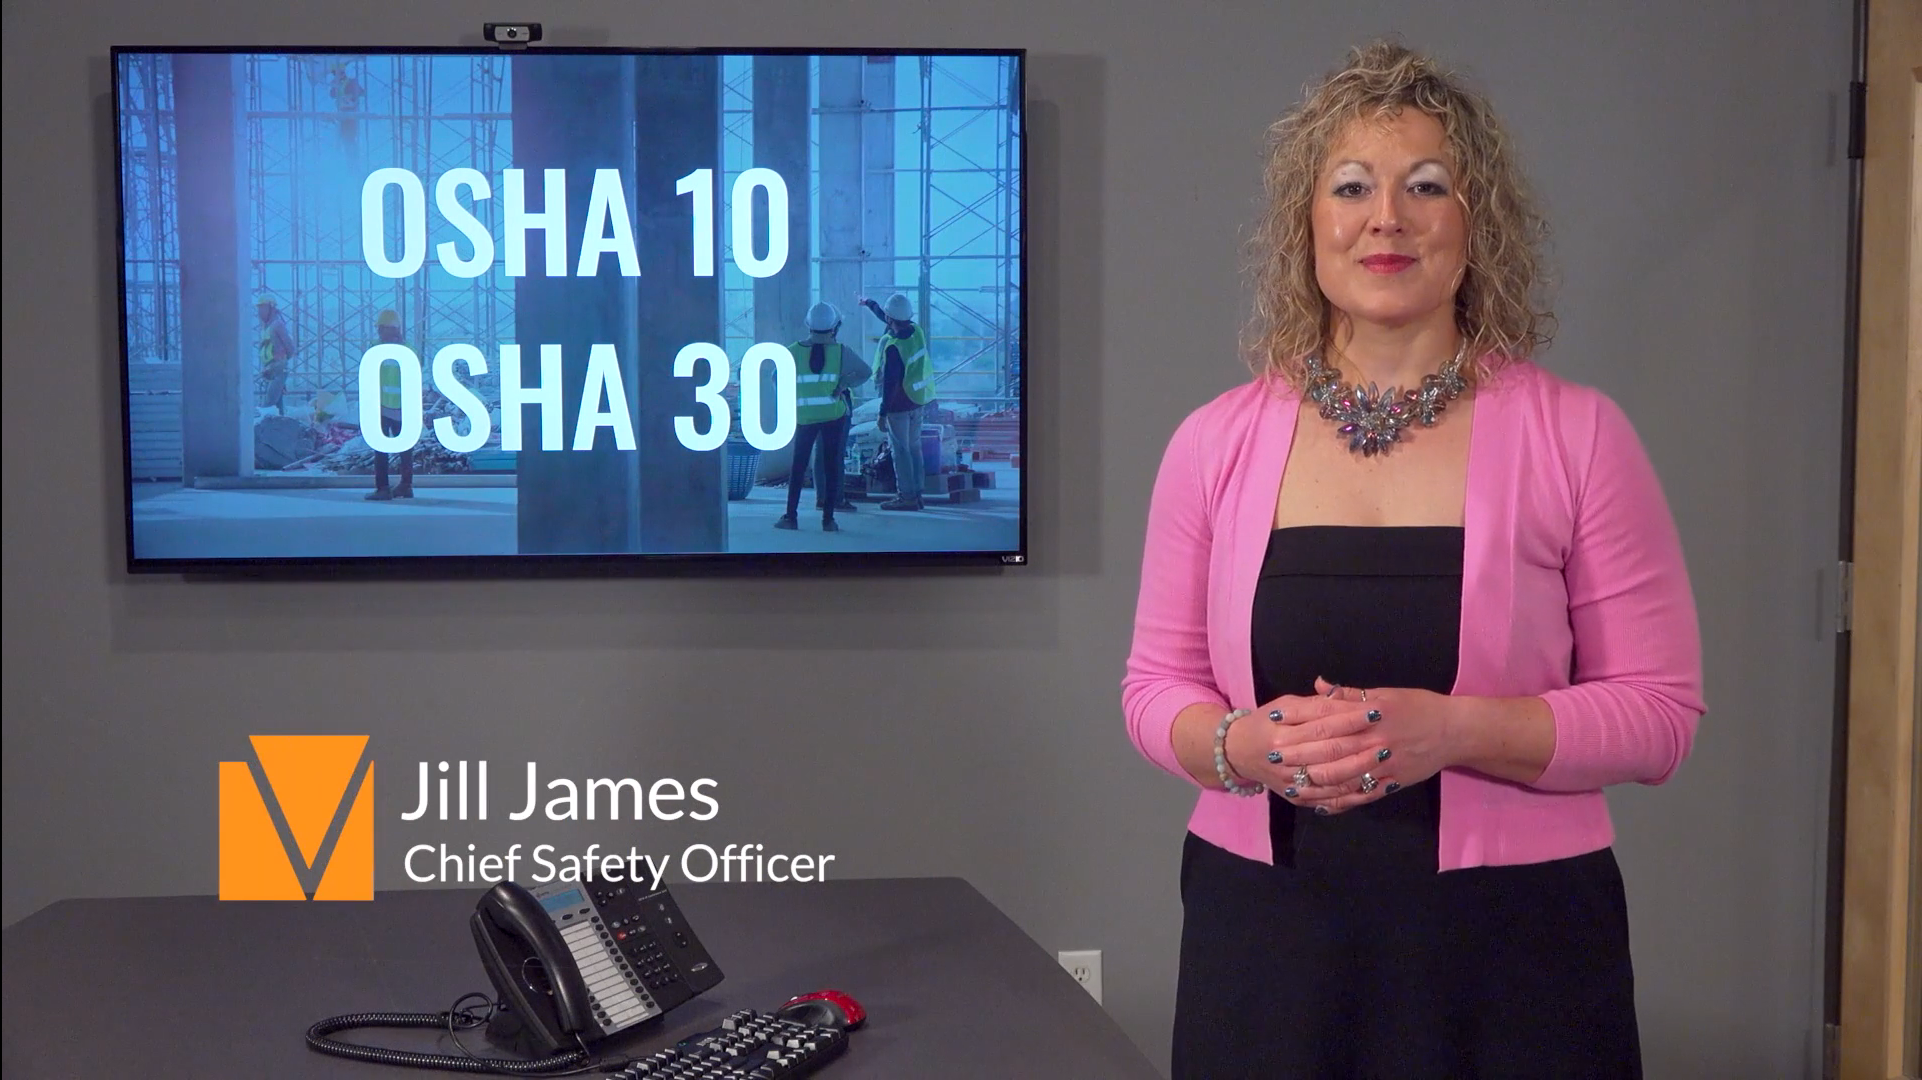 Common OSHA 10/30 Questions for Vivid Learning Systems